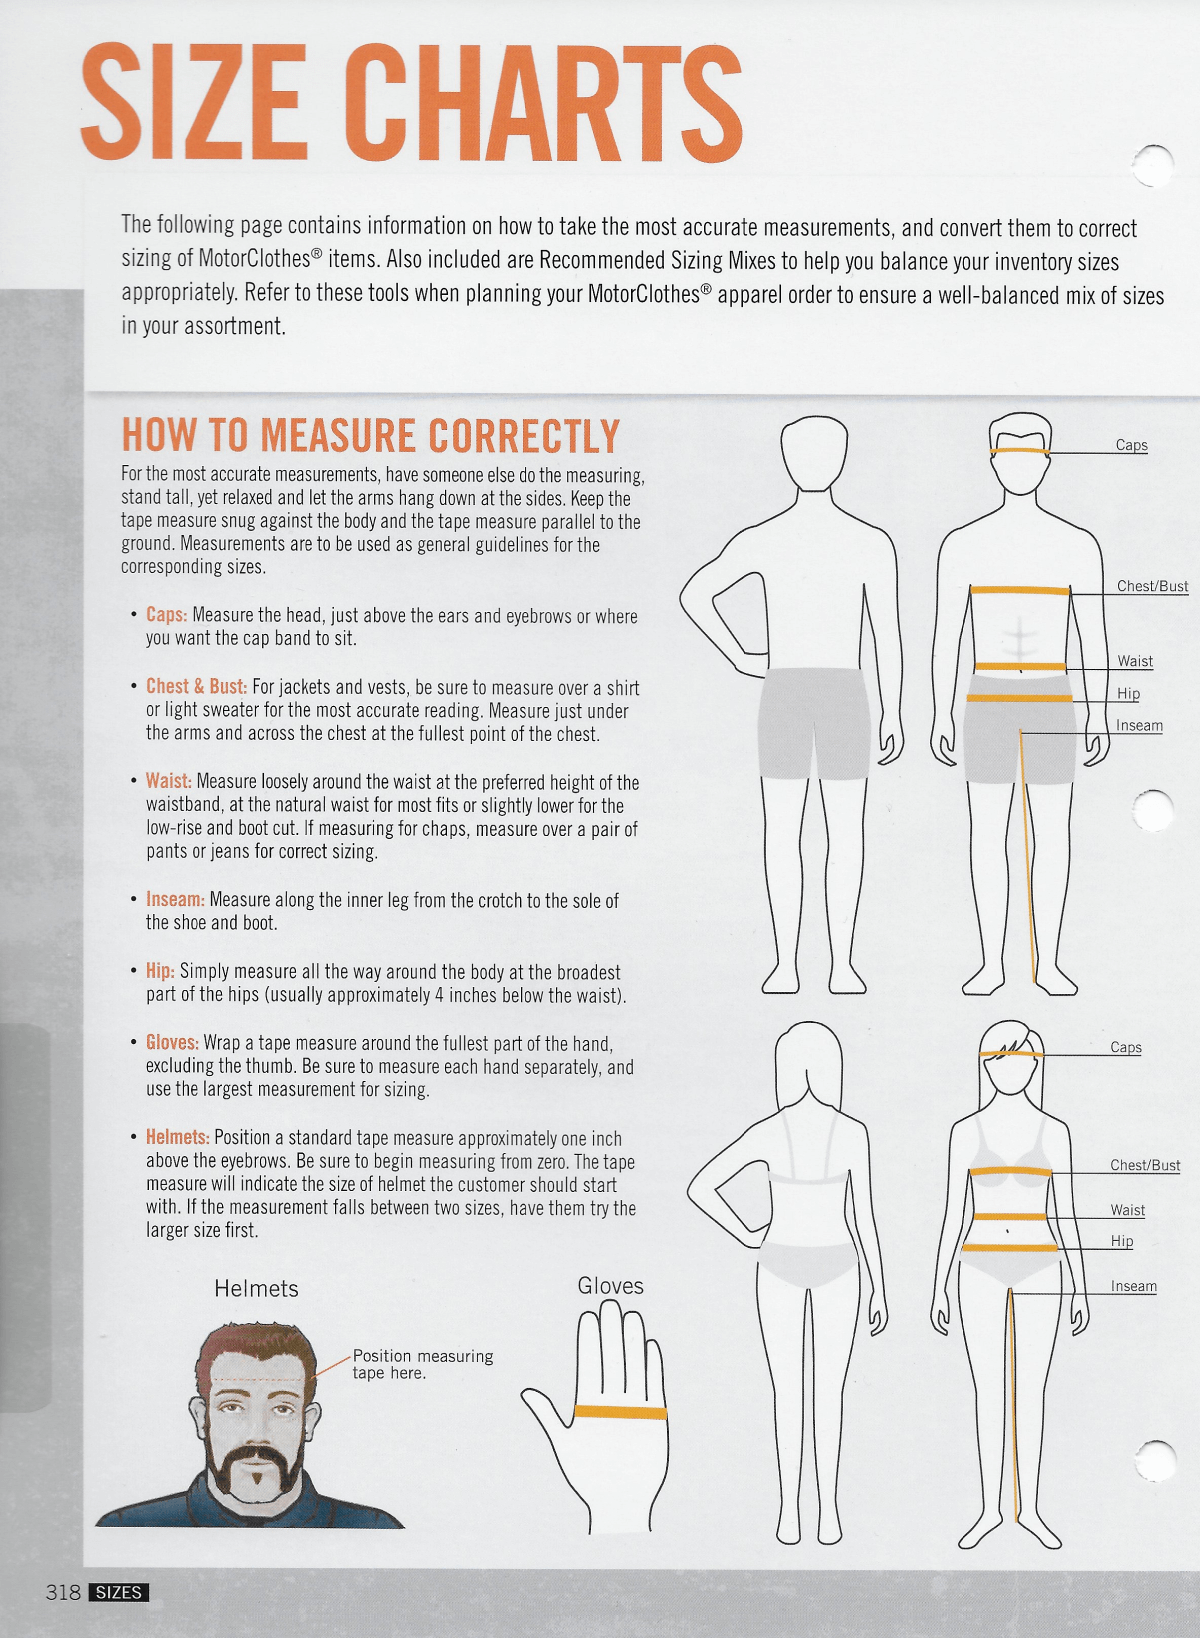 Harley-Davidson® Sizing Charts For MotorClothes